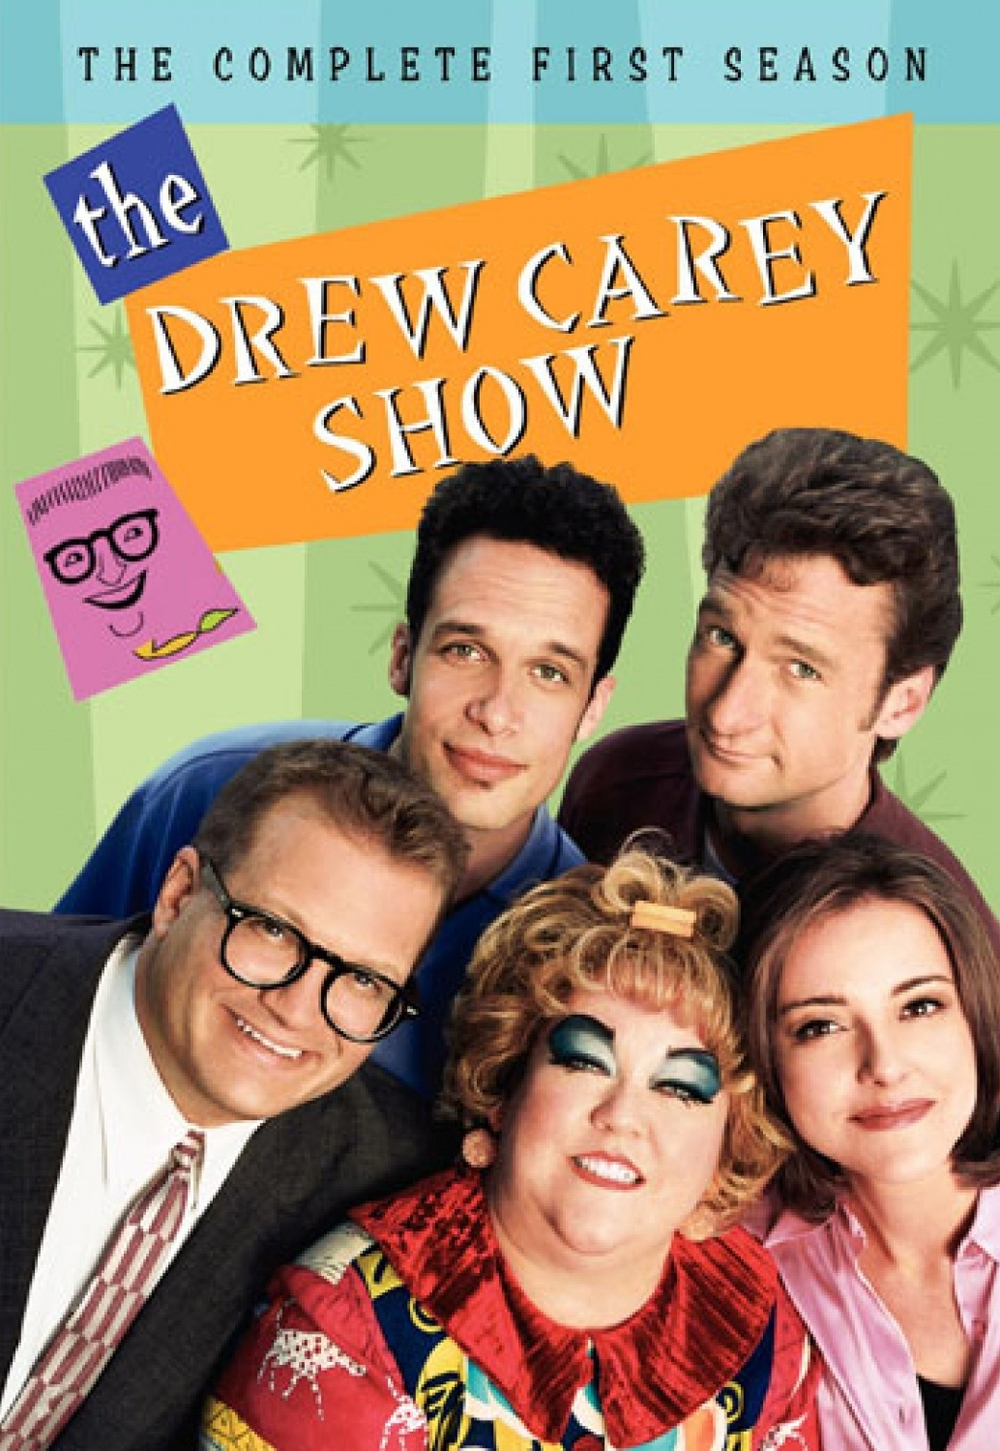 the-drew-carey-show-season-1-dvd_1500.jpg